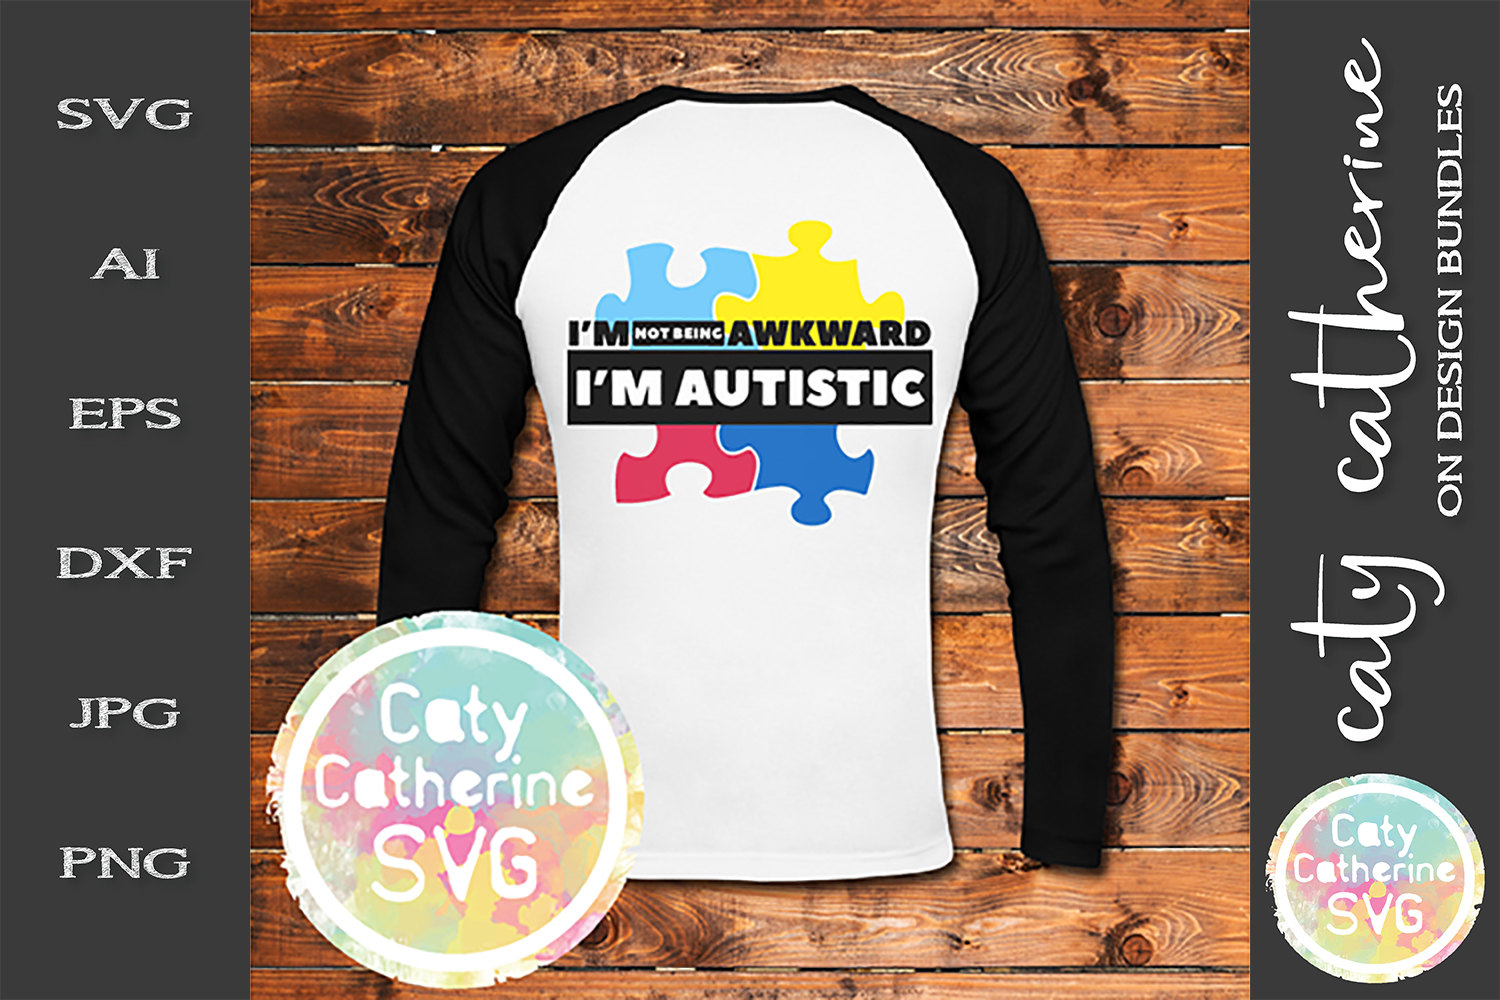 I'm Not Awkward I'm Autistic SVG Autism Awareness Cut File example image 2